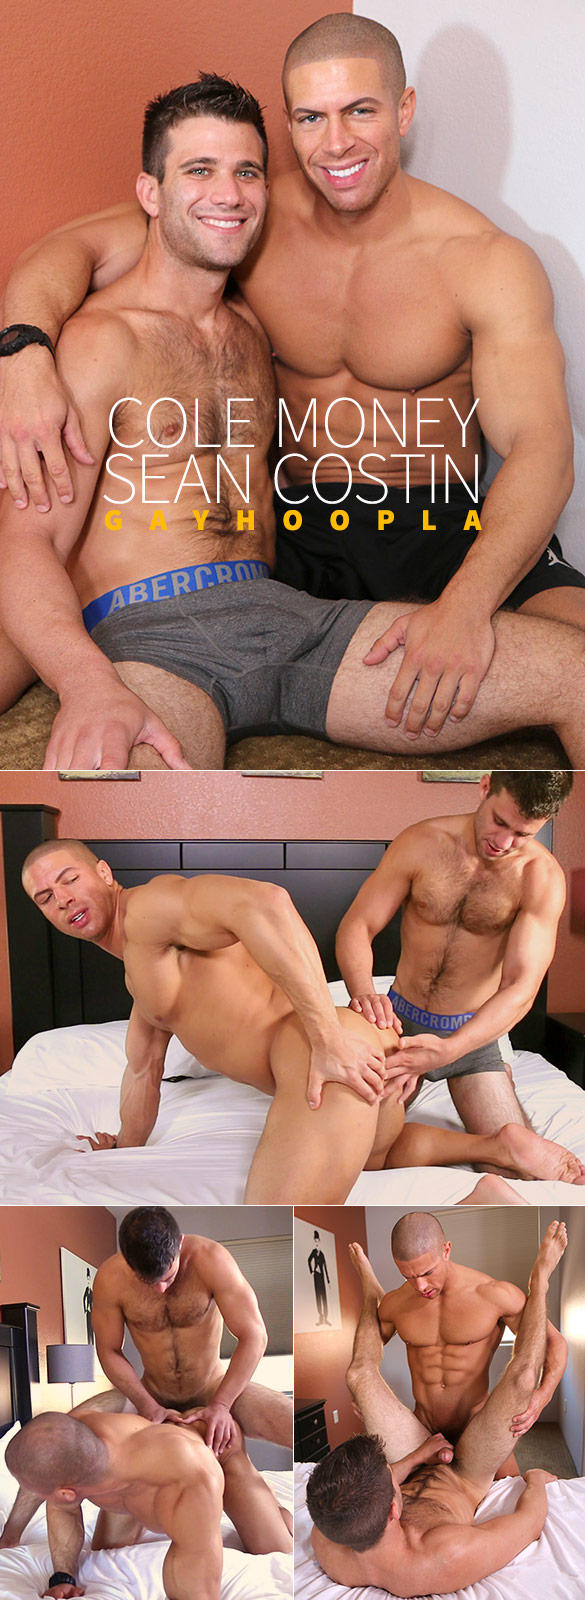 GayHoopla: Cole Money and Sean Costin flip fuck